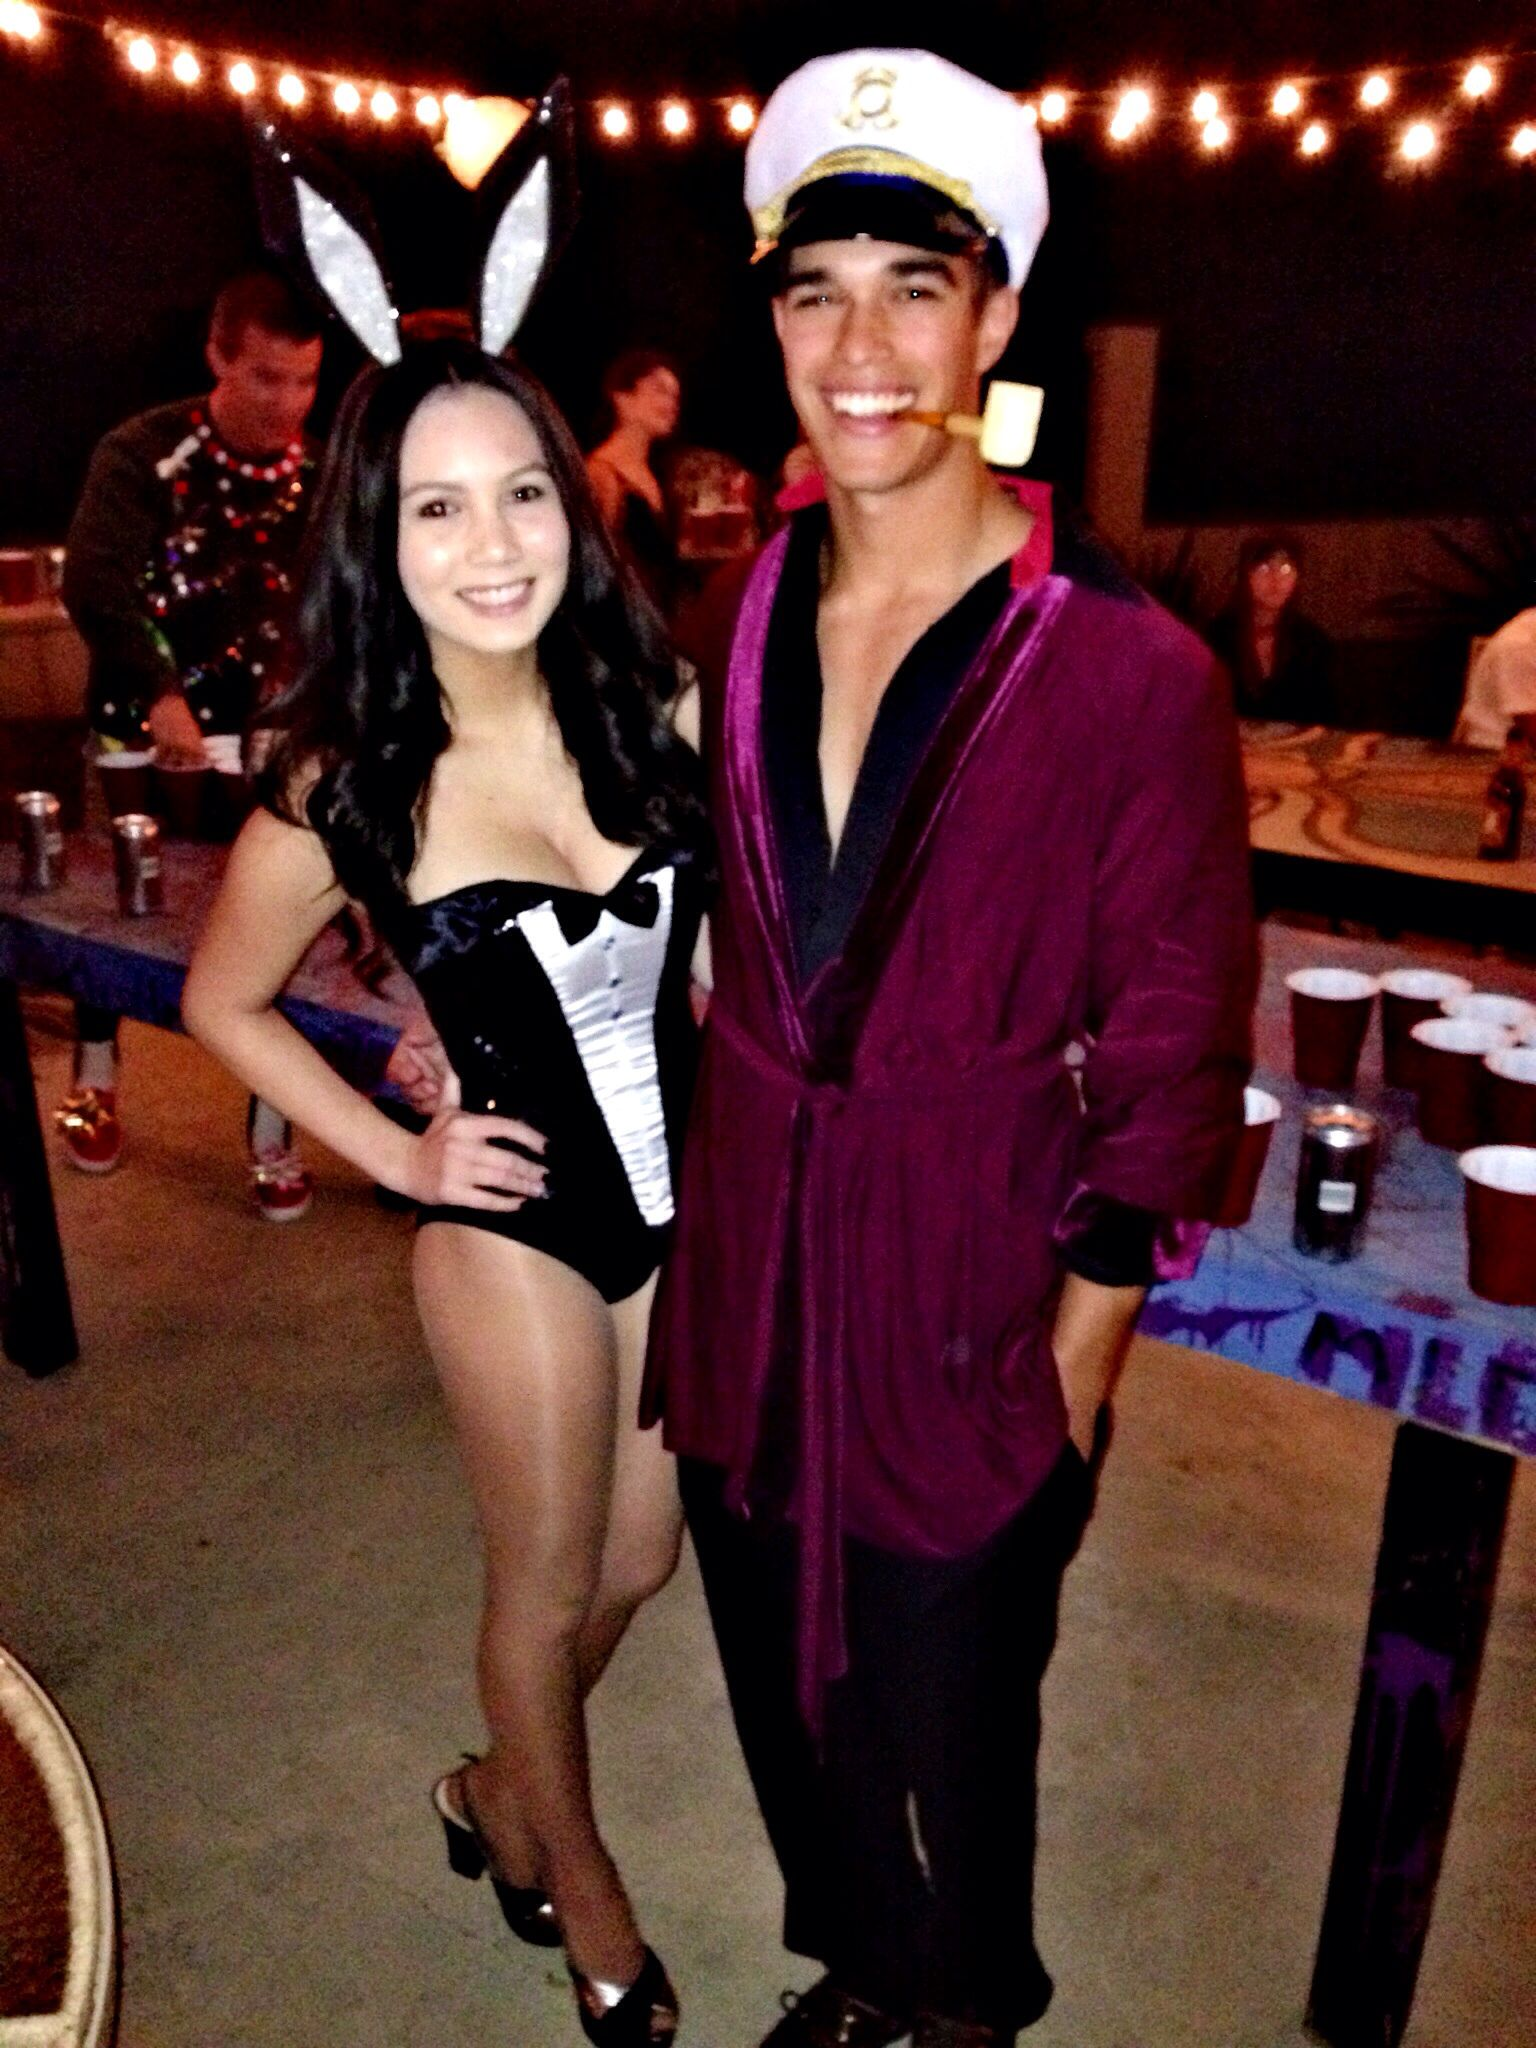 Hugh Hefner and bunny costume couples costume | Desires ...